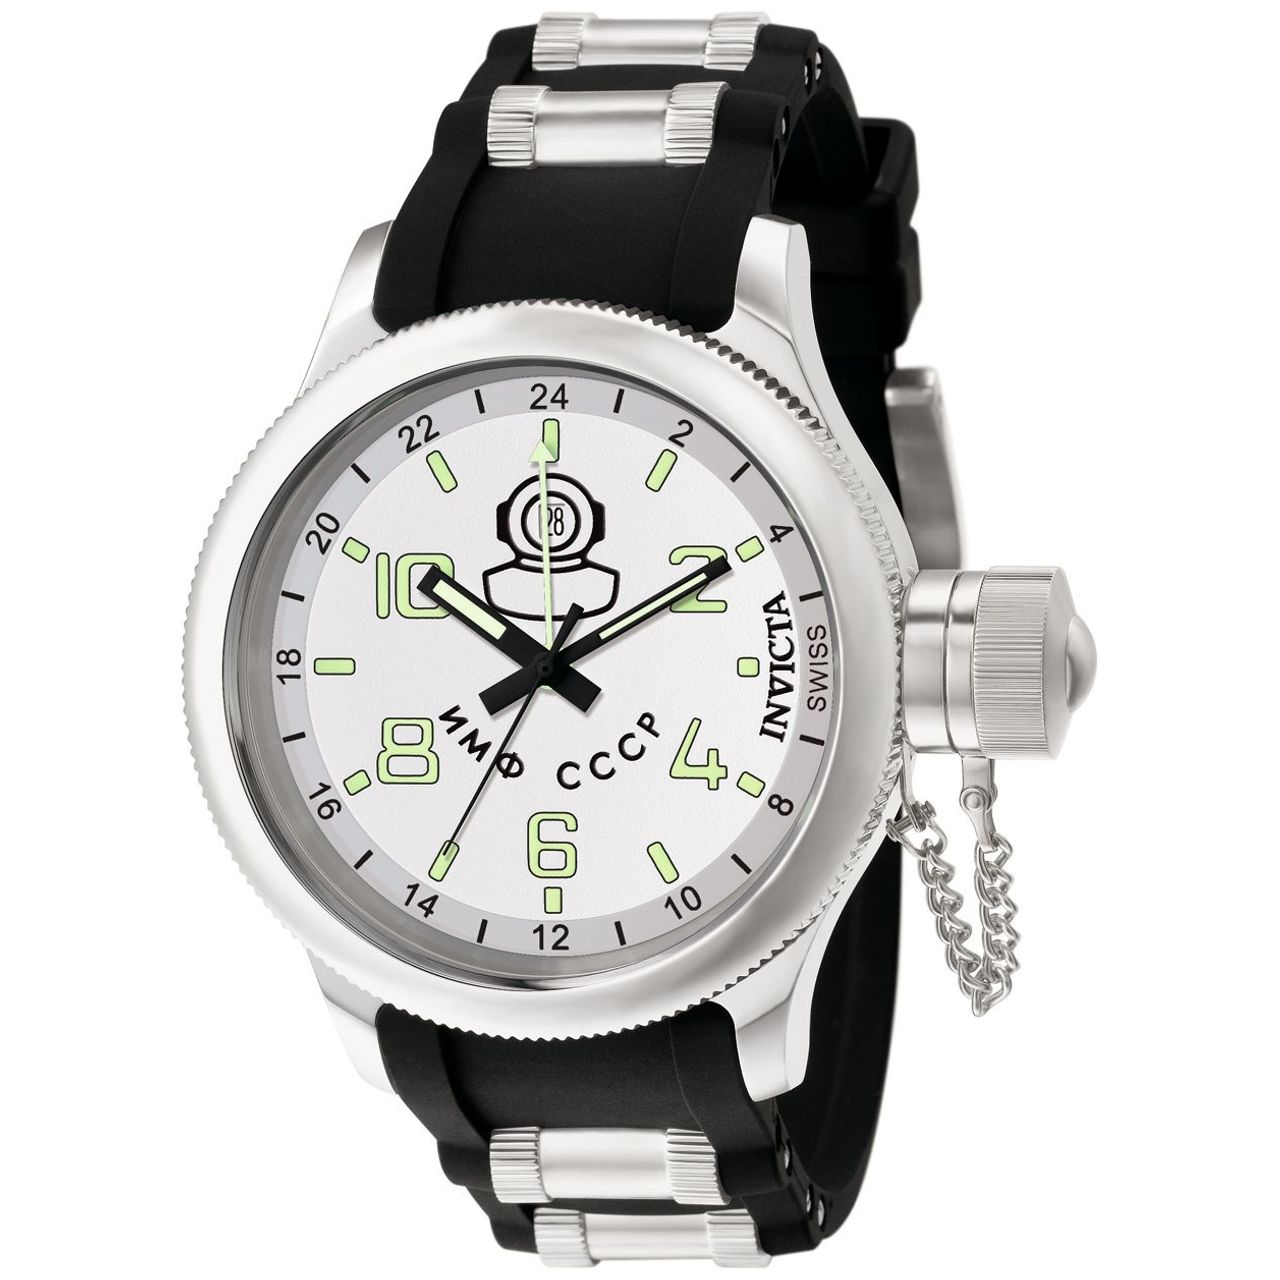 Invicta 7239 Mens Silver Dial Analog Quartz Watch with Stainless Steel Strap